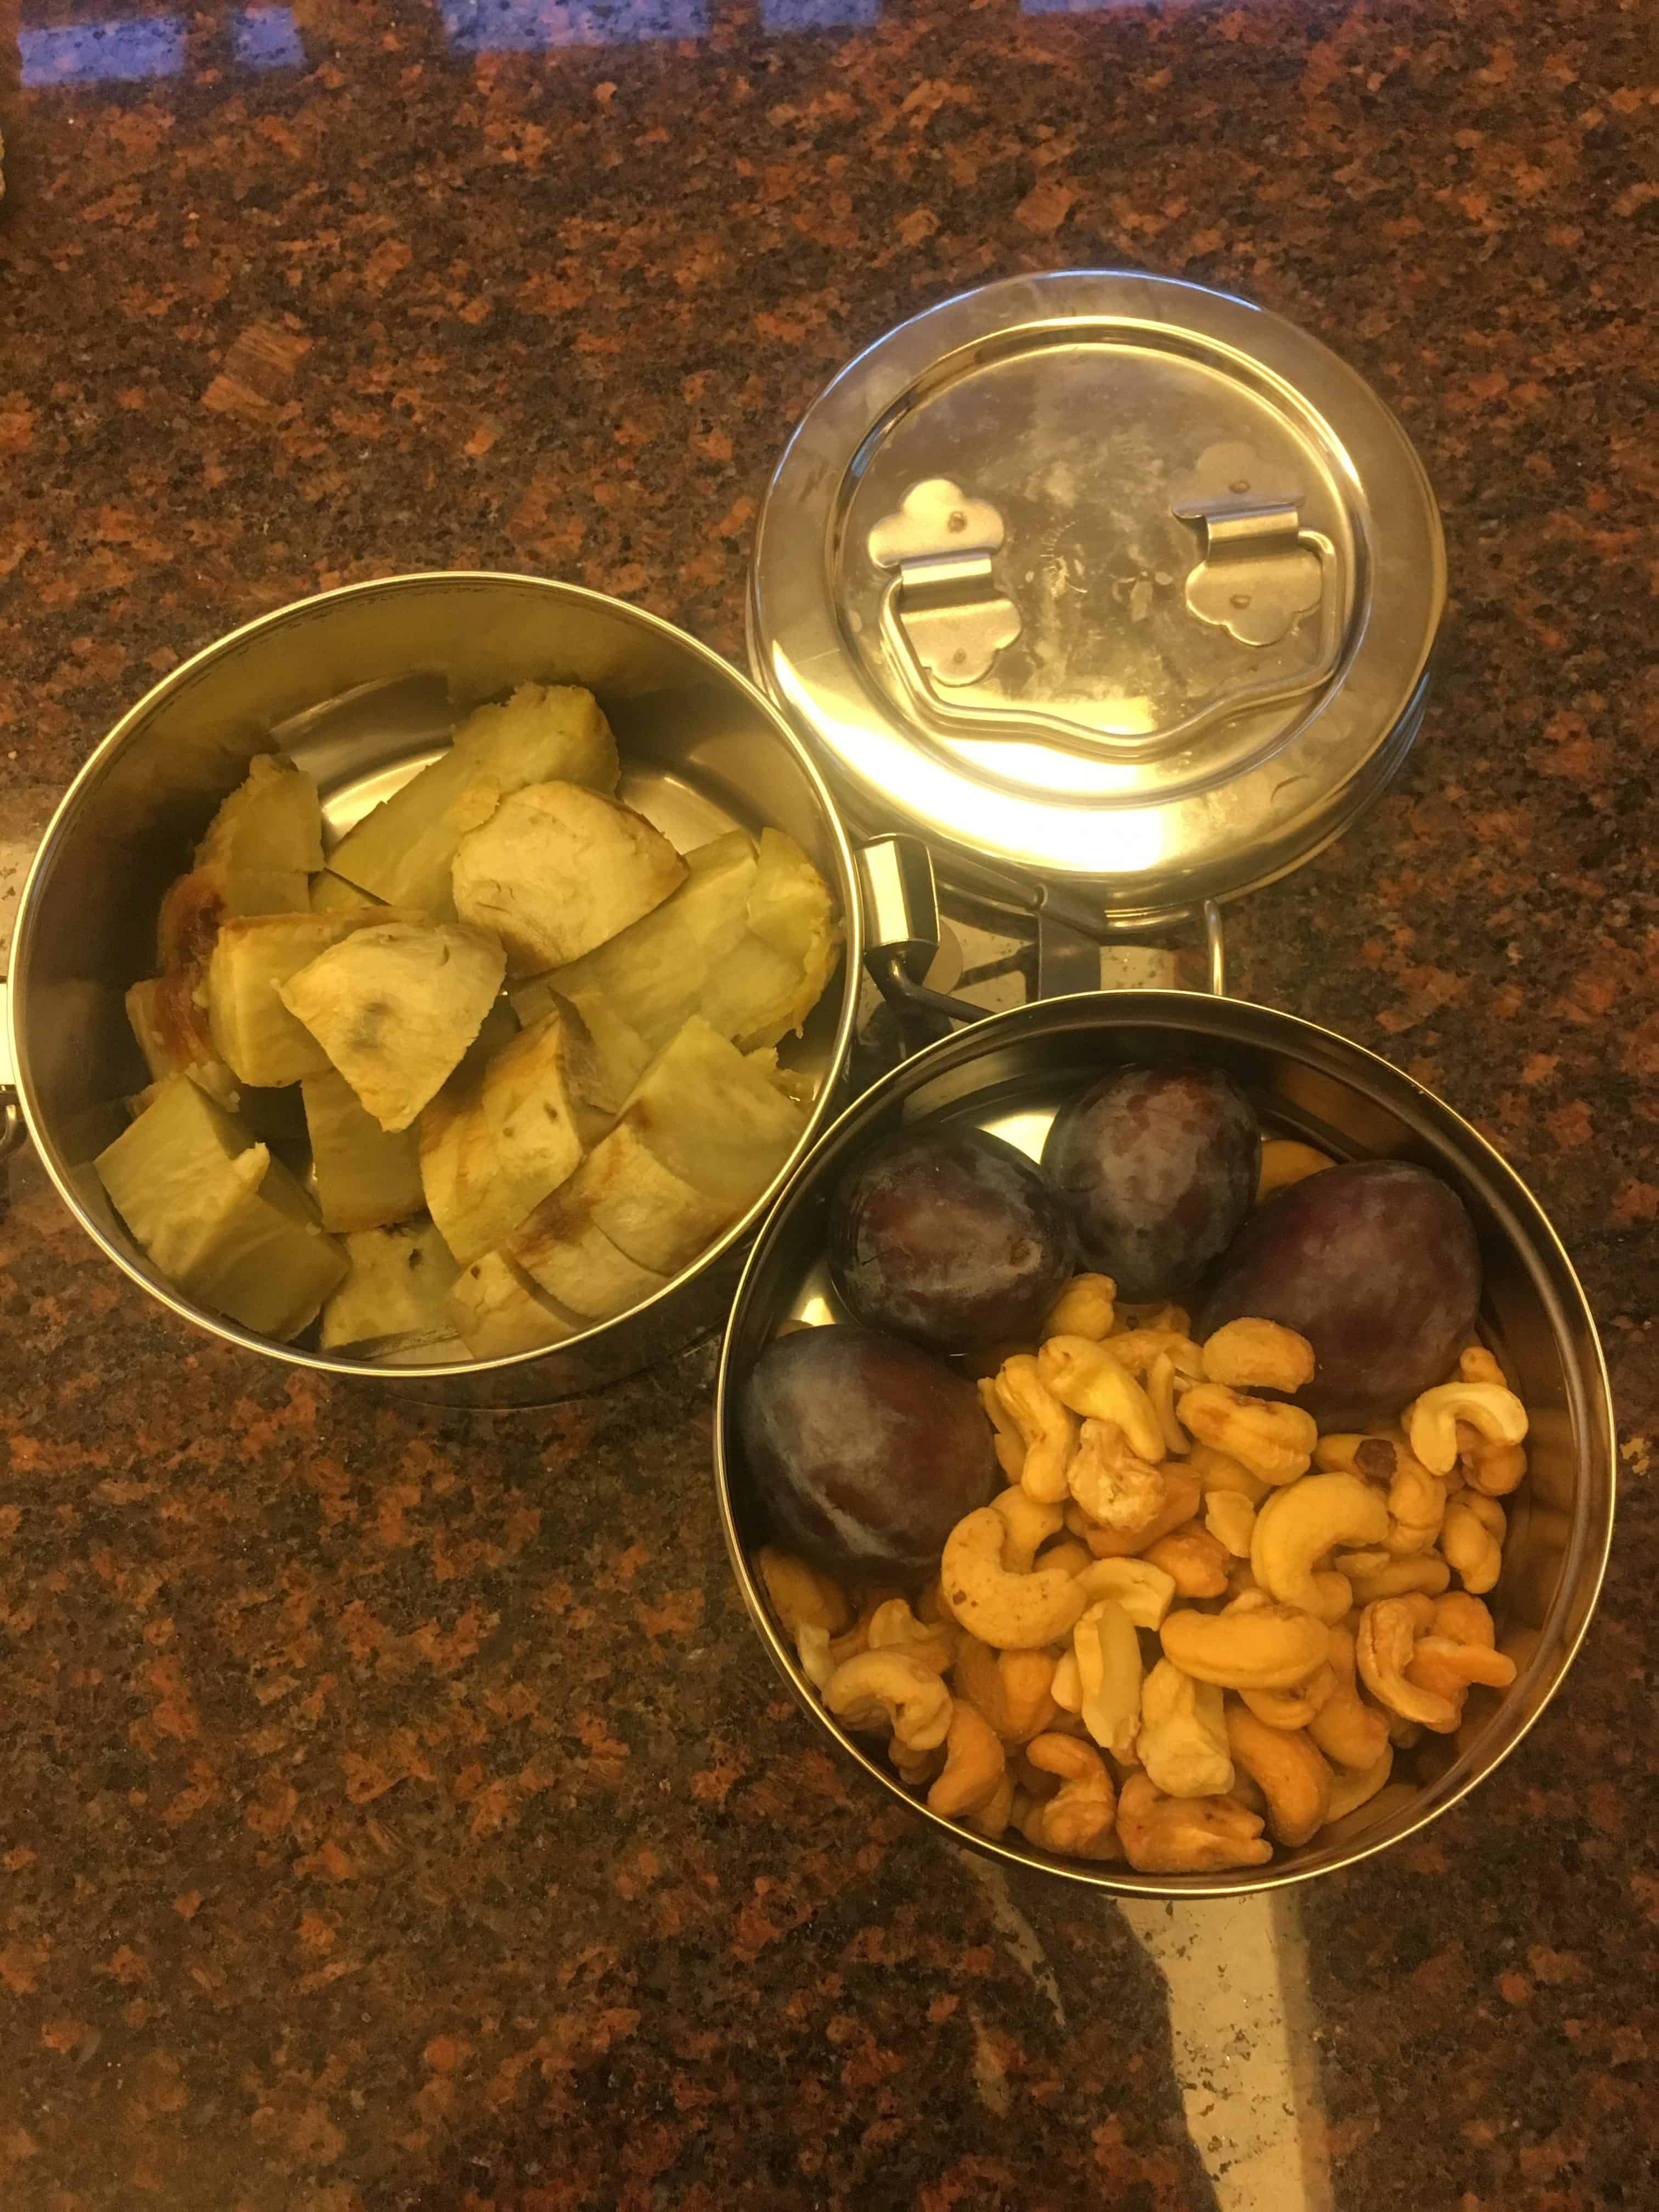 Photo of two tiffin sections, one with roasted cashews and Italian plums, another with cubed cooked sweet potato. https://trimazing.com/